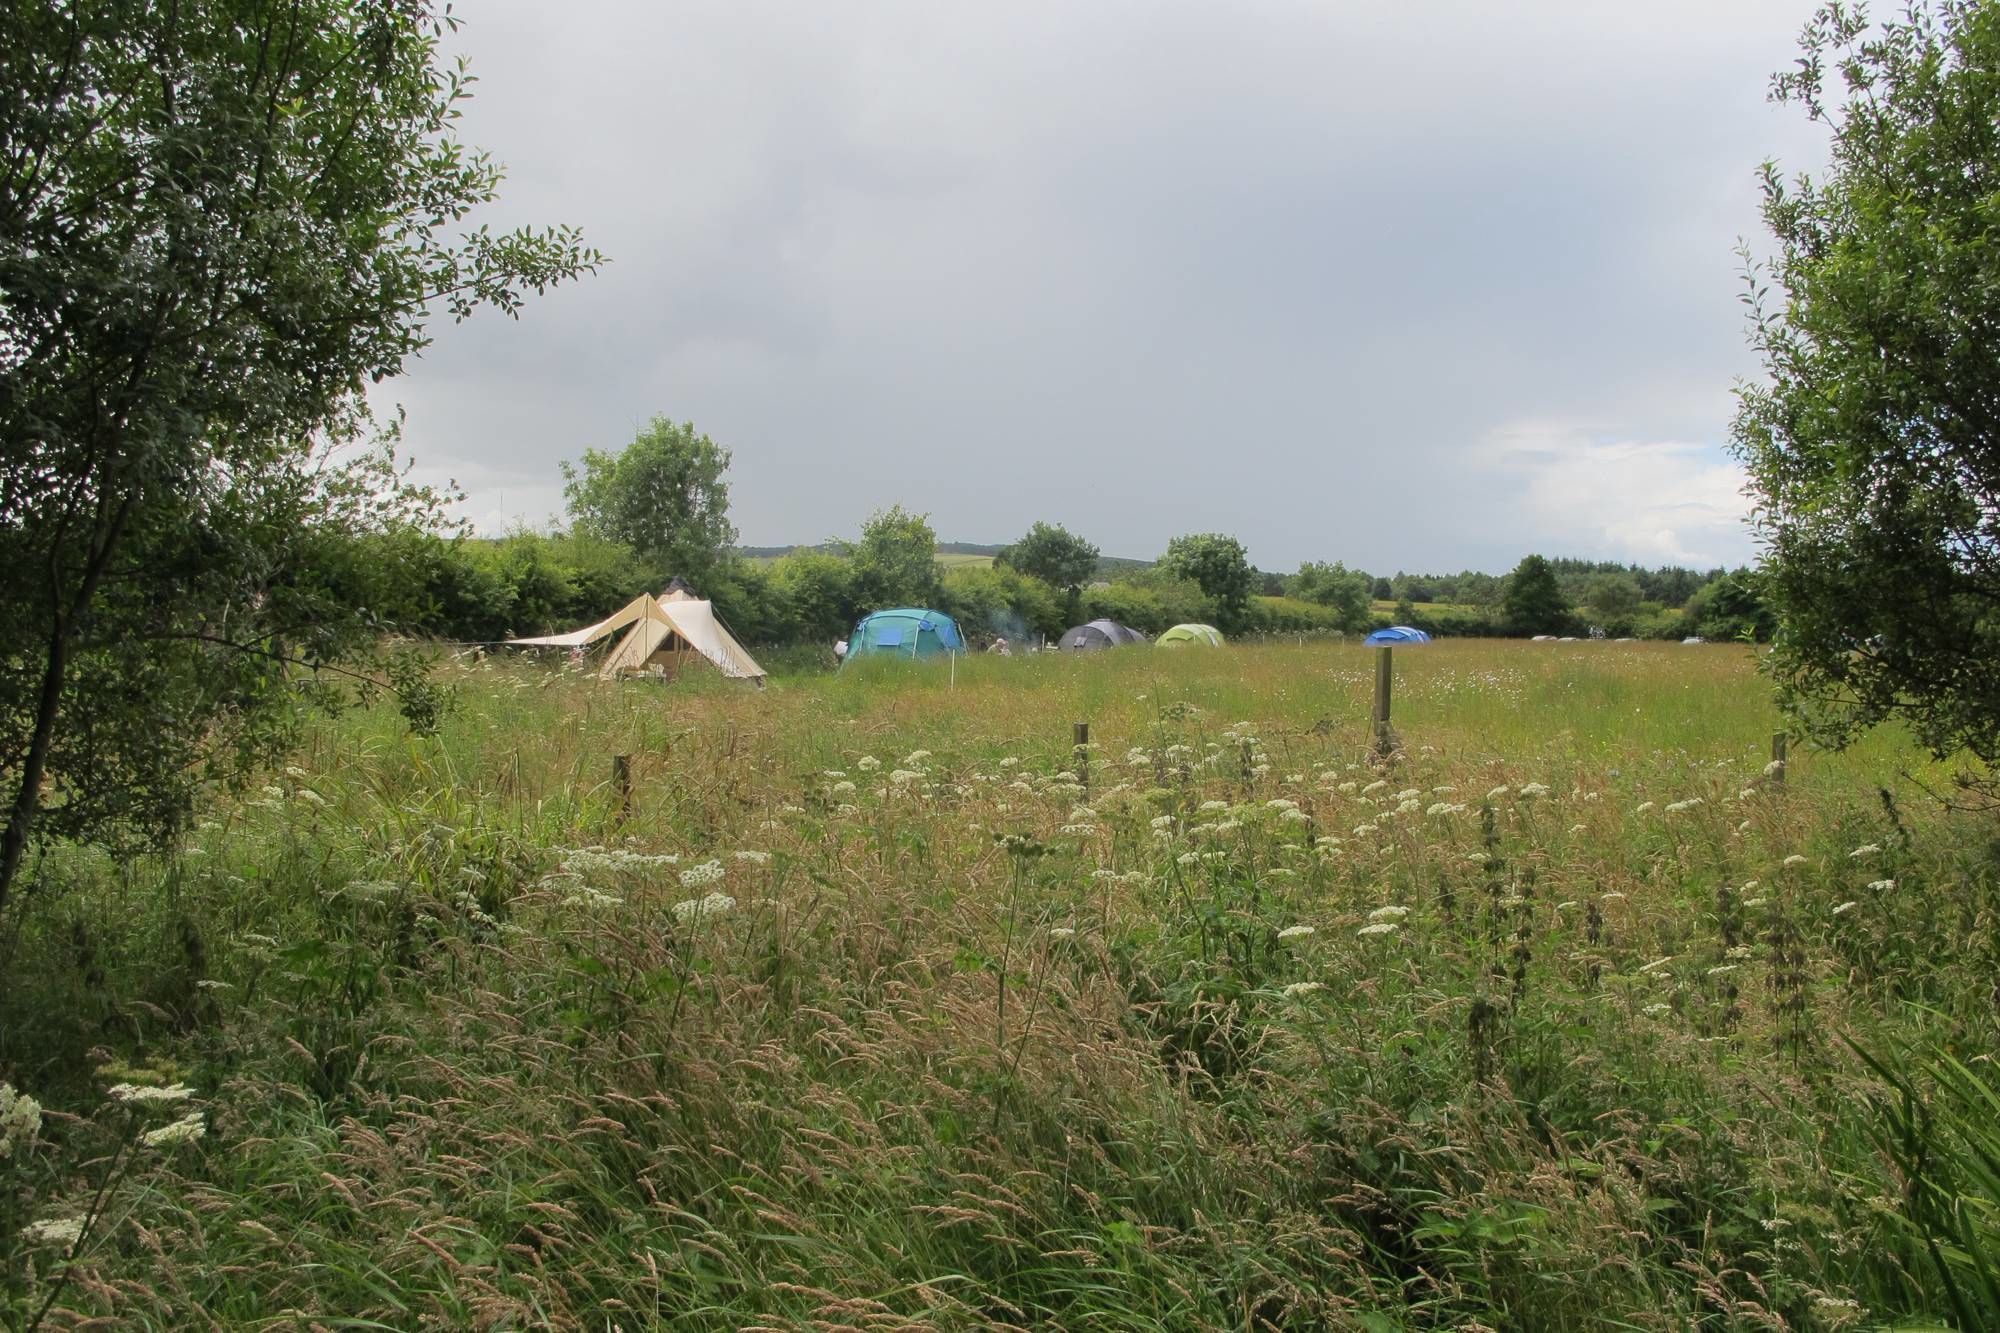 Campsites in Angus – Glampingly